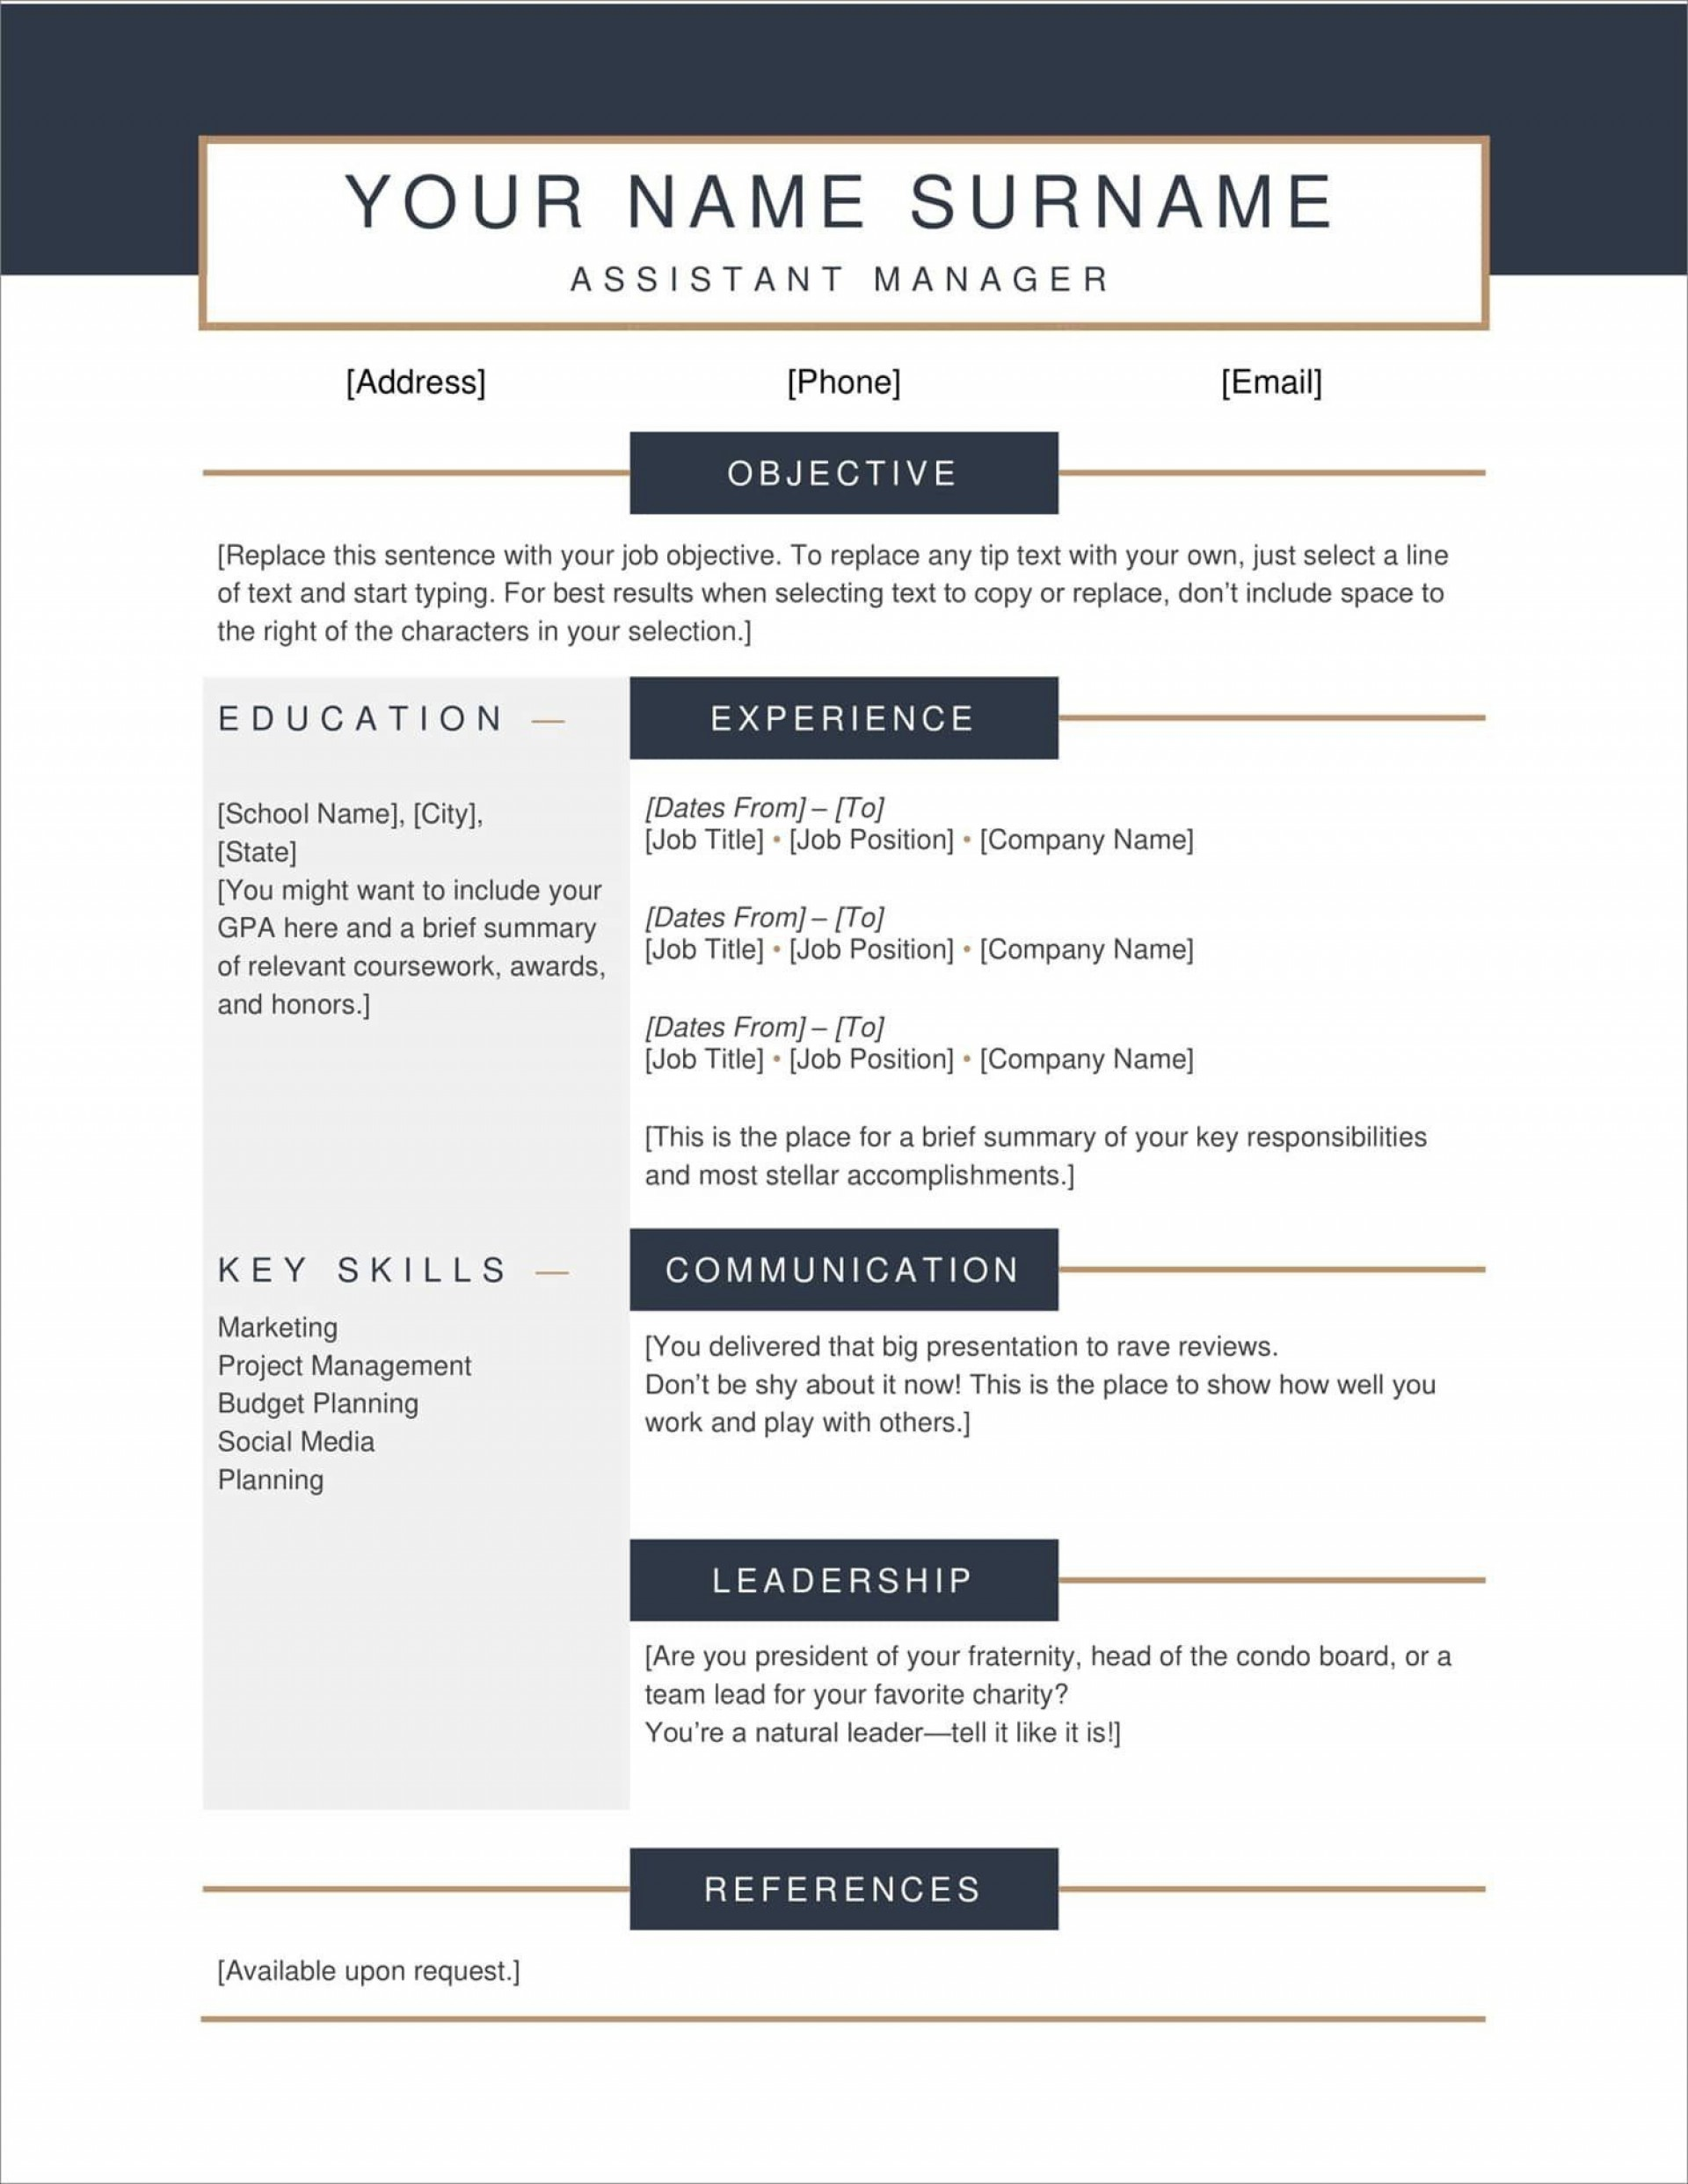 003 Surprising Resume Example Pdf Free Download Highest Clarity 1920